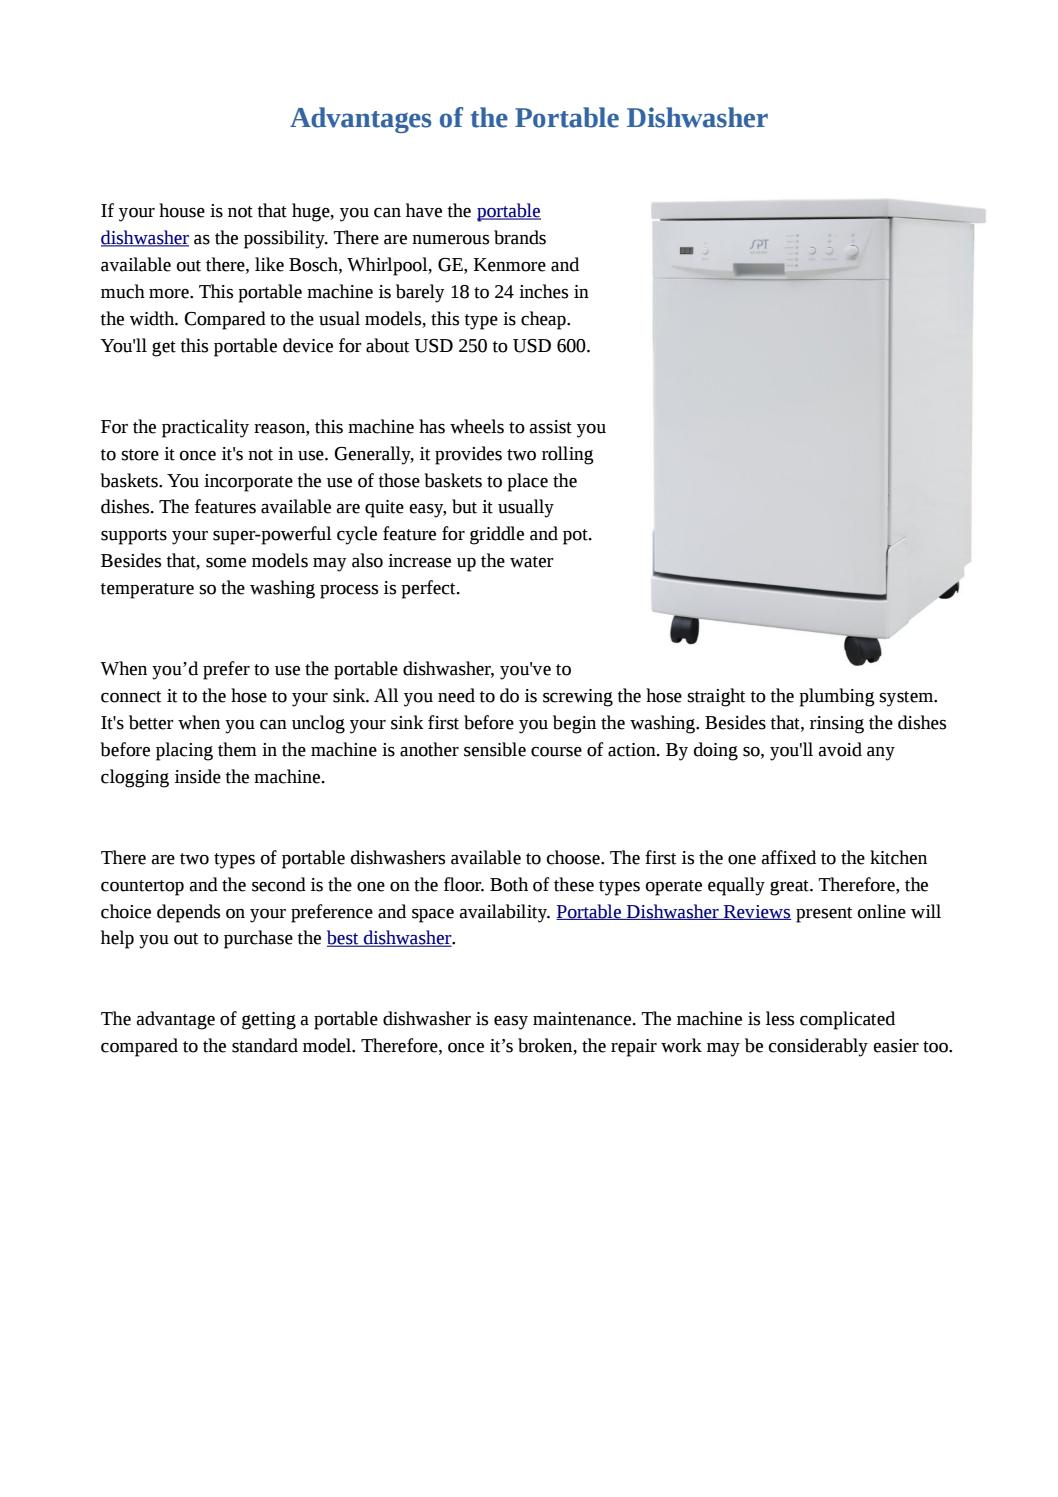 Advantages Of The Portable Dishwasher By Dishwasherzone Issuu